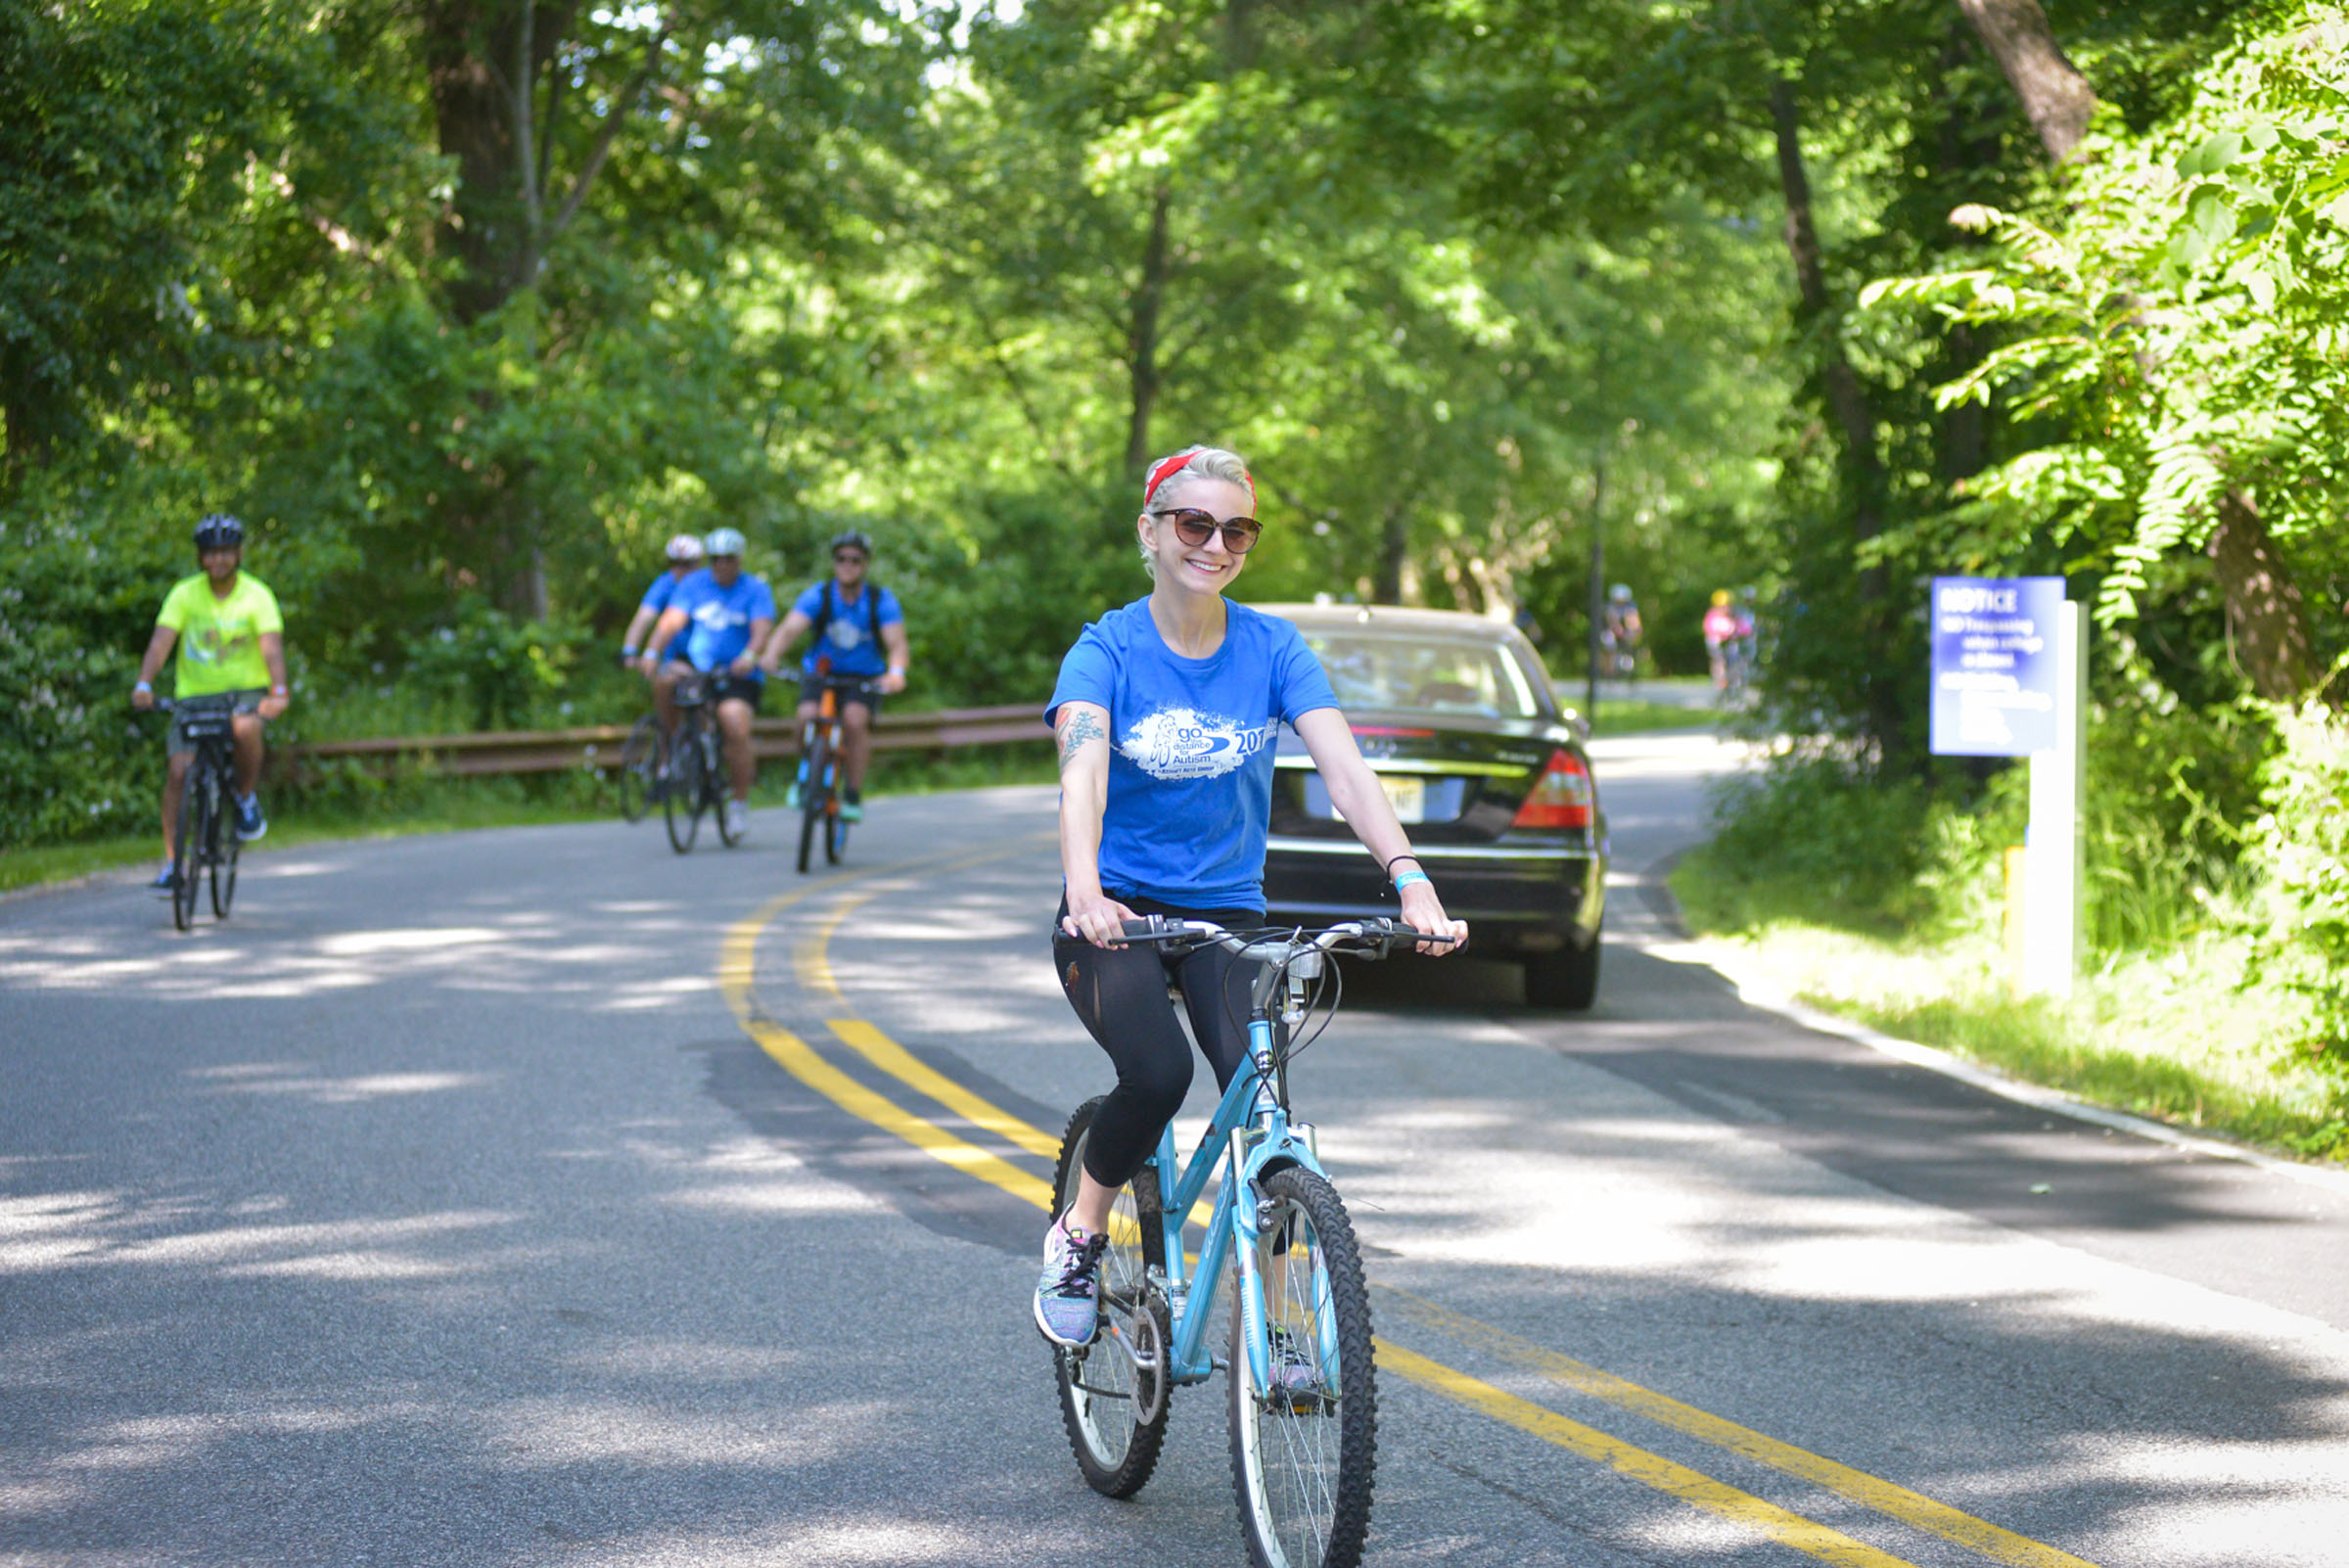 2017-06-04 GTD4A Charity Bike Ride - BCC - Paramus NJ-1934.jpg